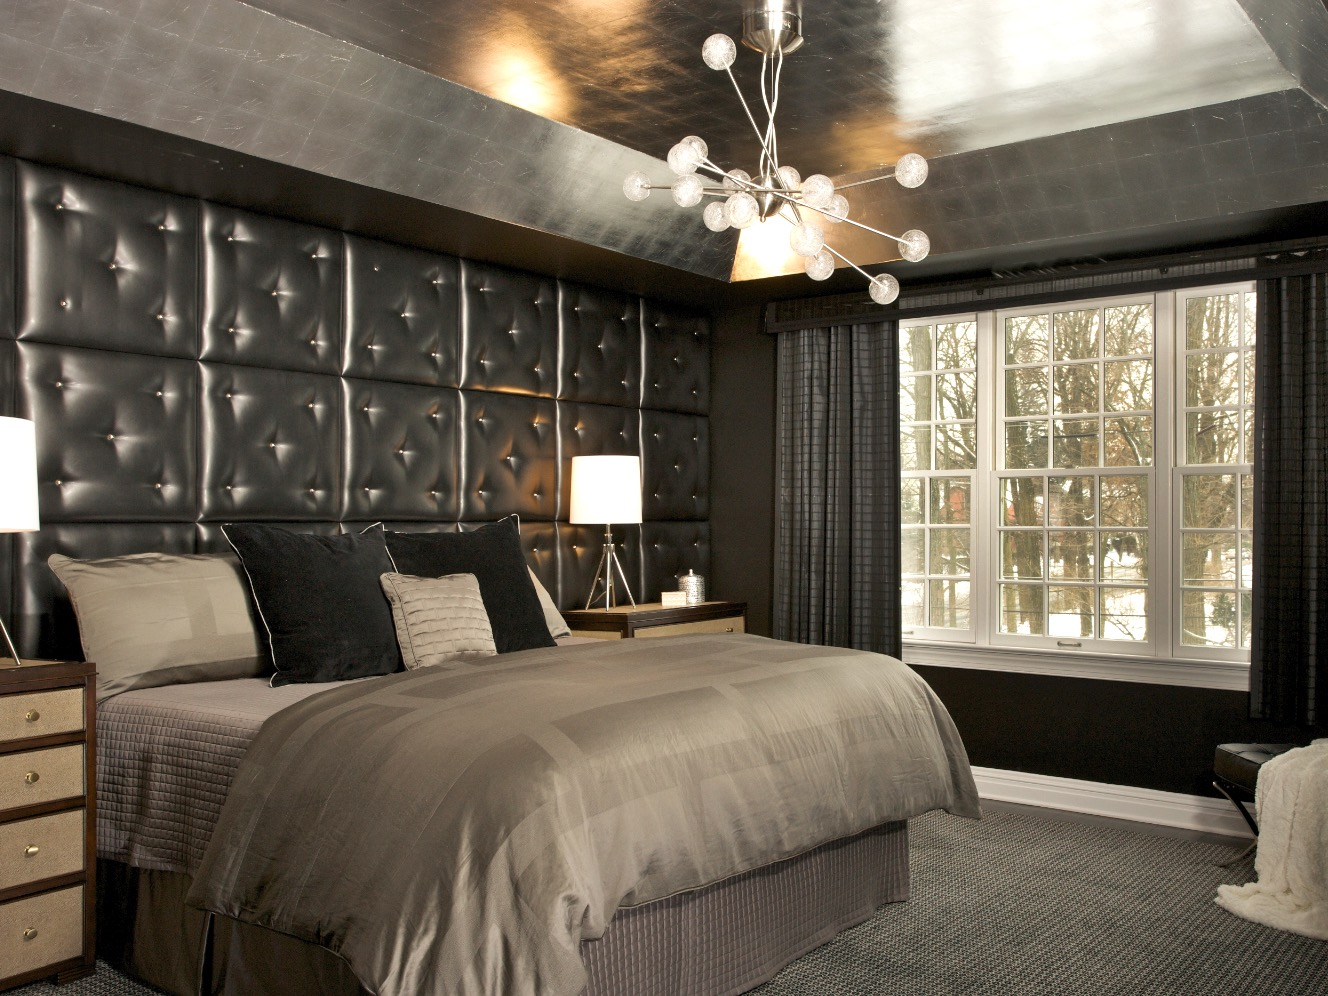 Gothic Inspired Bedroom With Black Tufted Wall (Image 8 of 11)